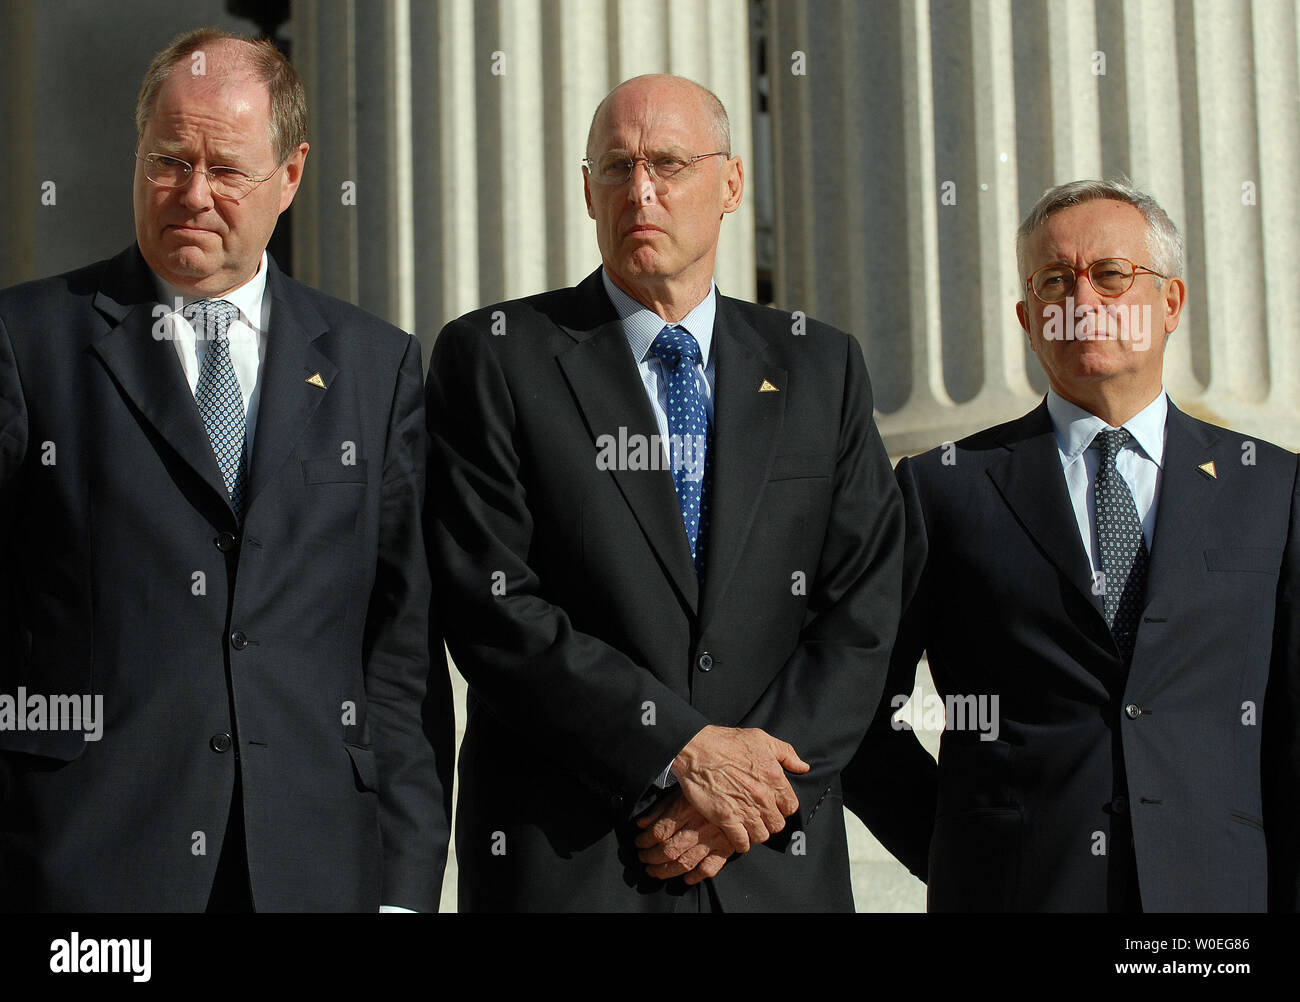 Group of 7 Finance Ministers Peer Steinbrueck (Germany), US Treasury Secretary Henry Paulson, and Giulio Tremonti (Italy) (L to R) stand on the steps of the Treasury Department as they are photographed in Washington on October 10, 2008. The ministers are in town for the semi-annual World Bank and International Monetary Fund meeting occurring this weekend.  (UPI Photo/Roger L. Wollenberg) - Stock Image